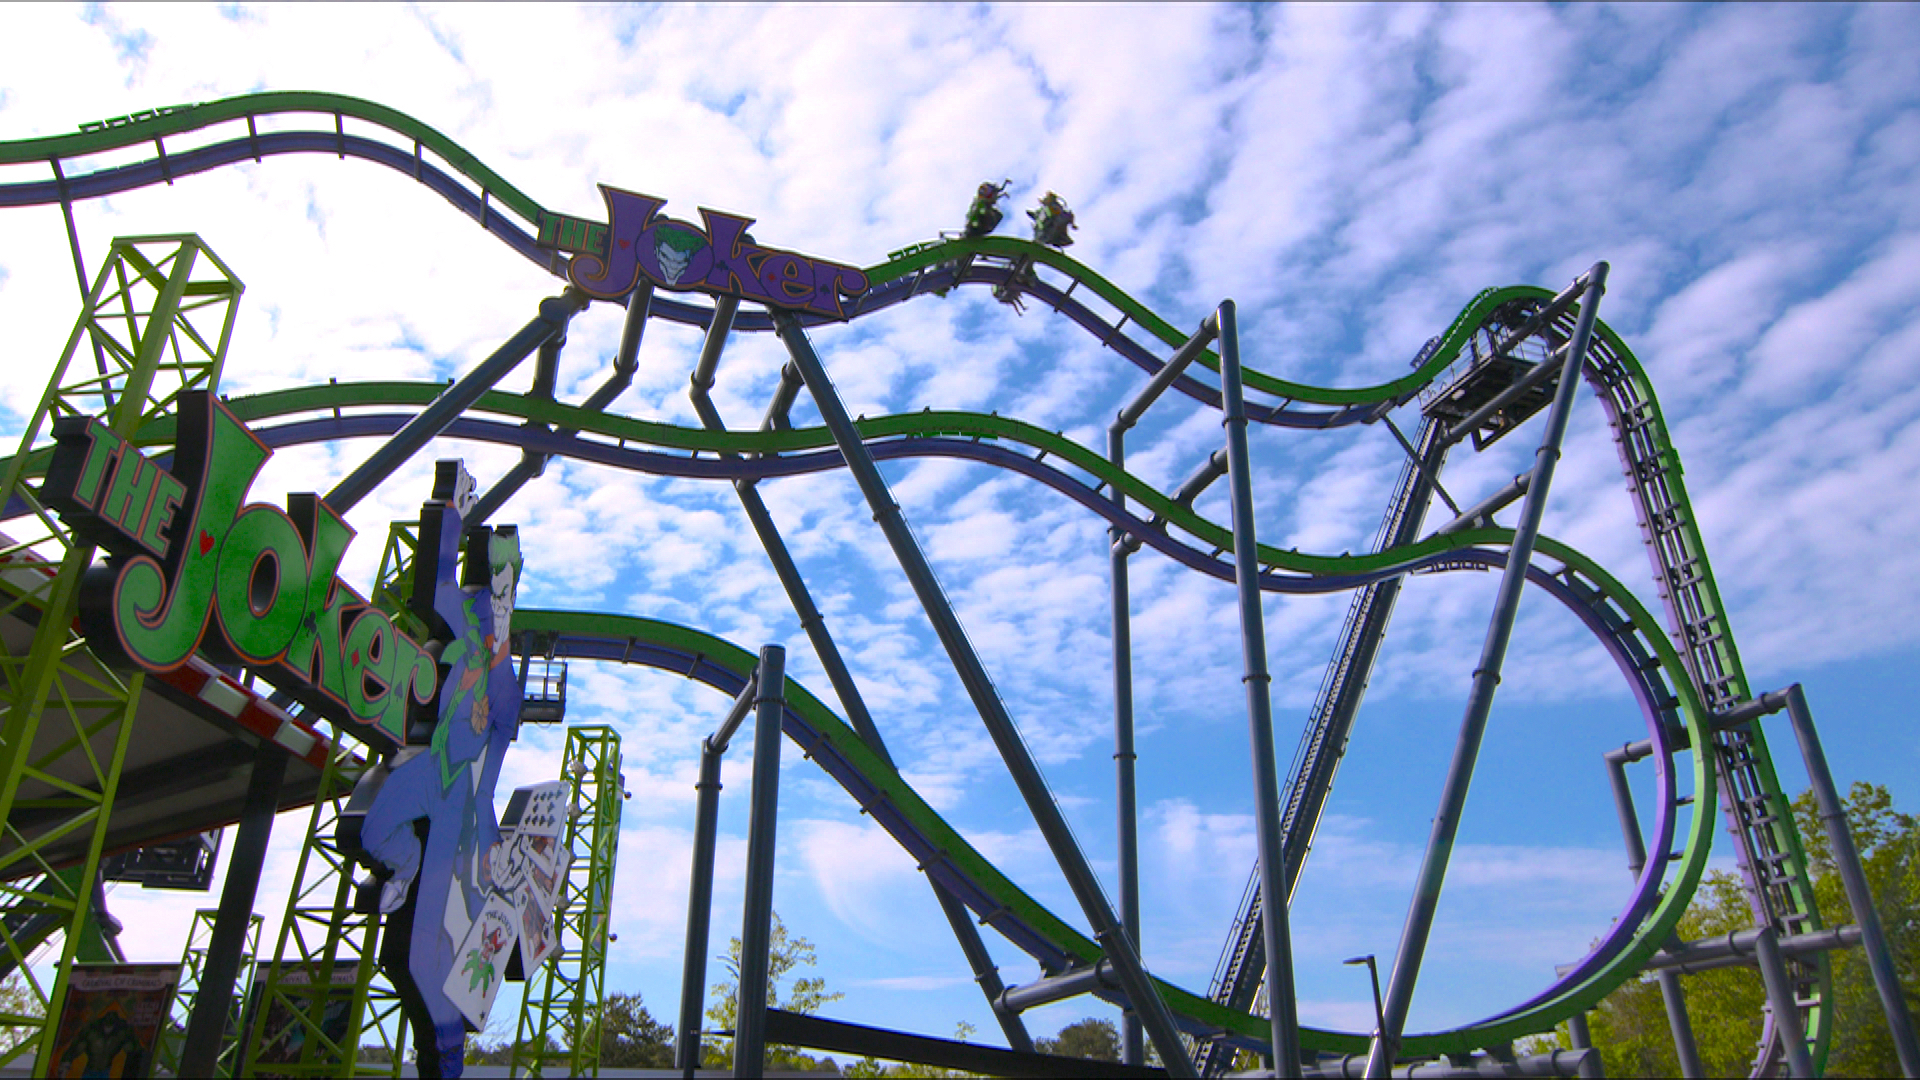 The Joker is coming to Six Flags Over Texas in 2017.